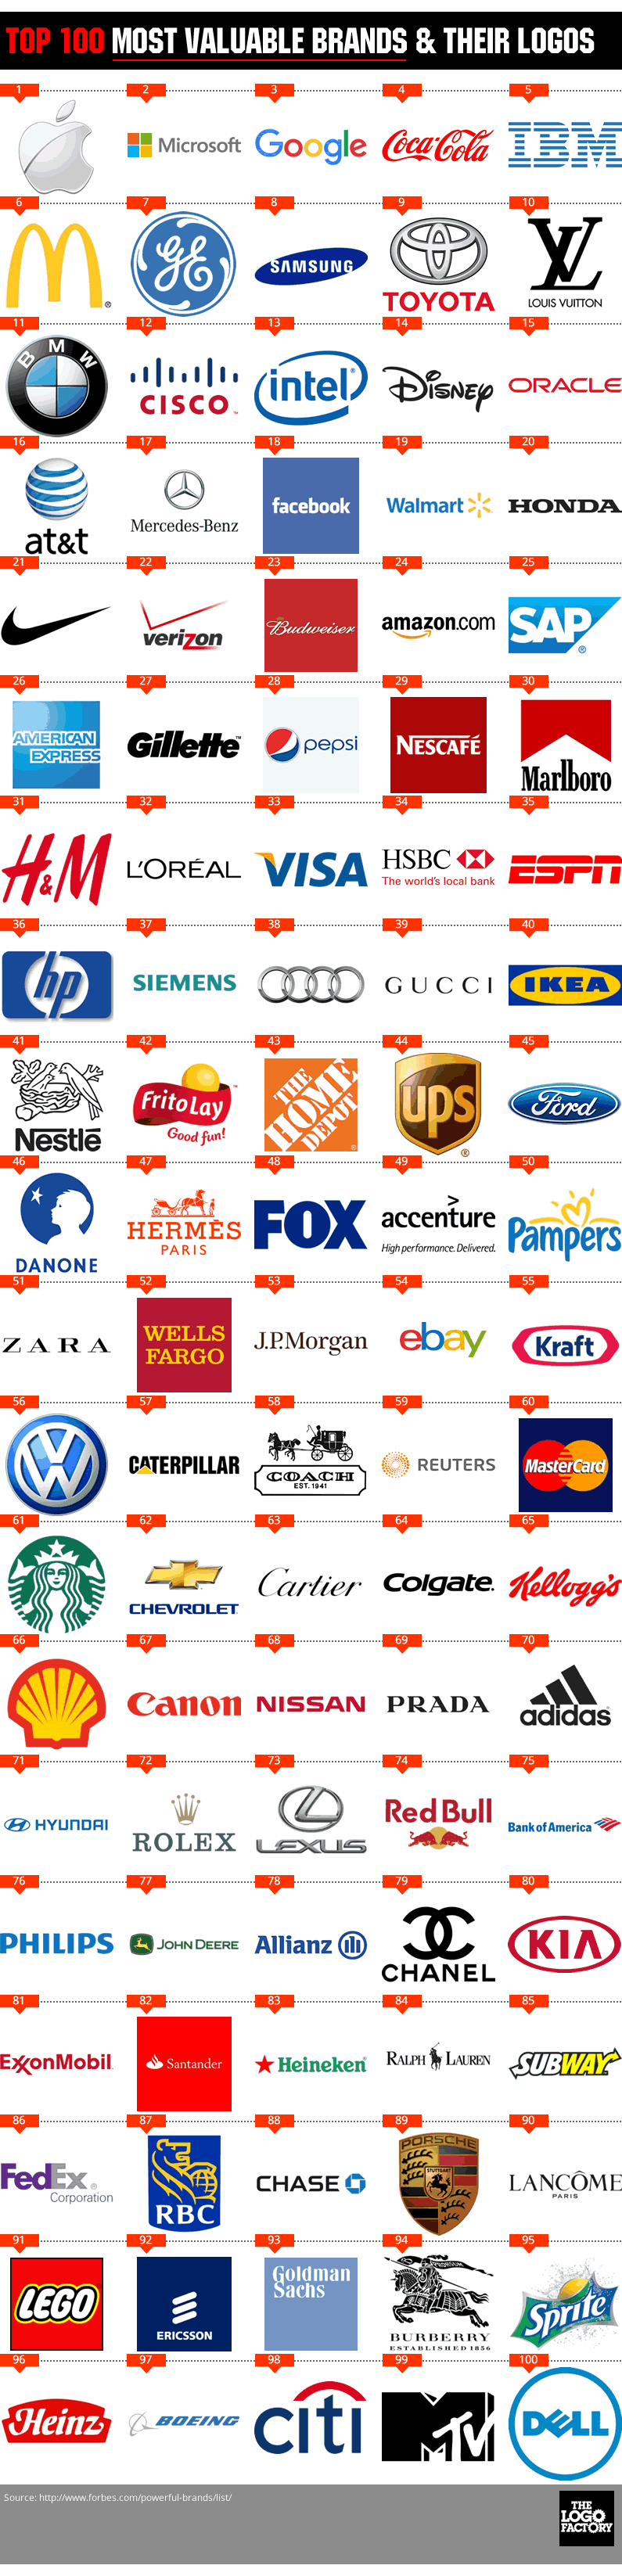 Top 100 Brands Their Logos What Can We Learn Colorful Logo Design Brand Brand Marketing